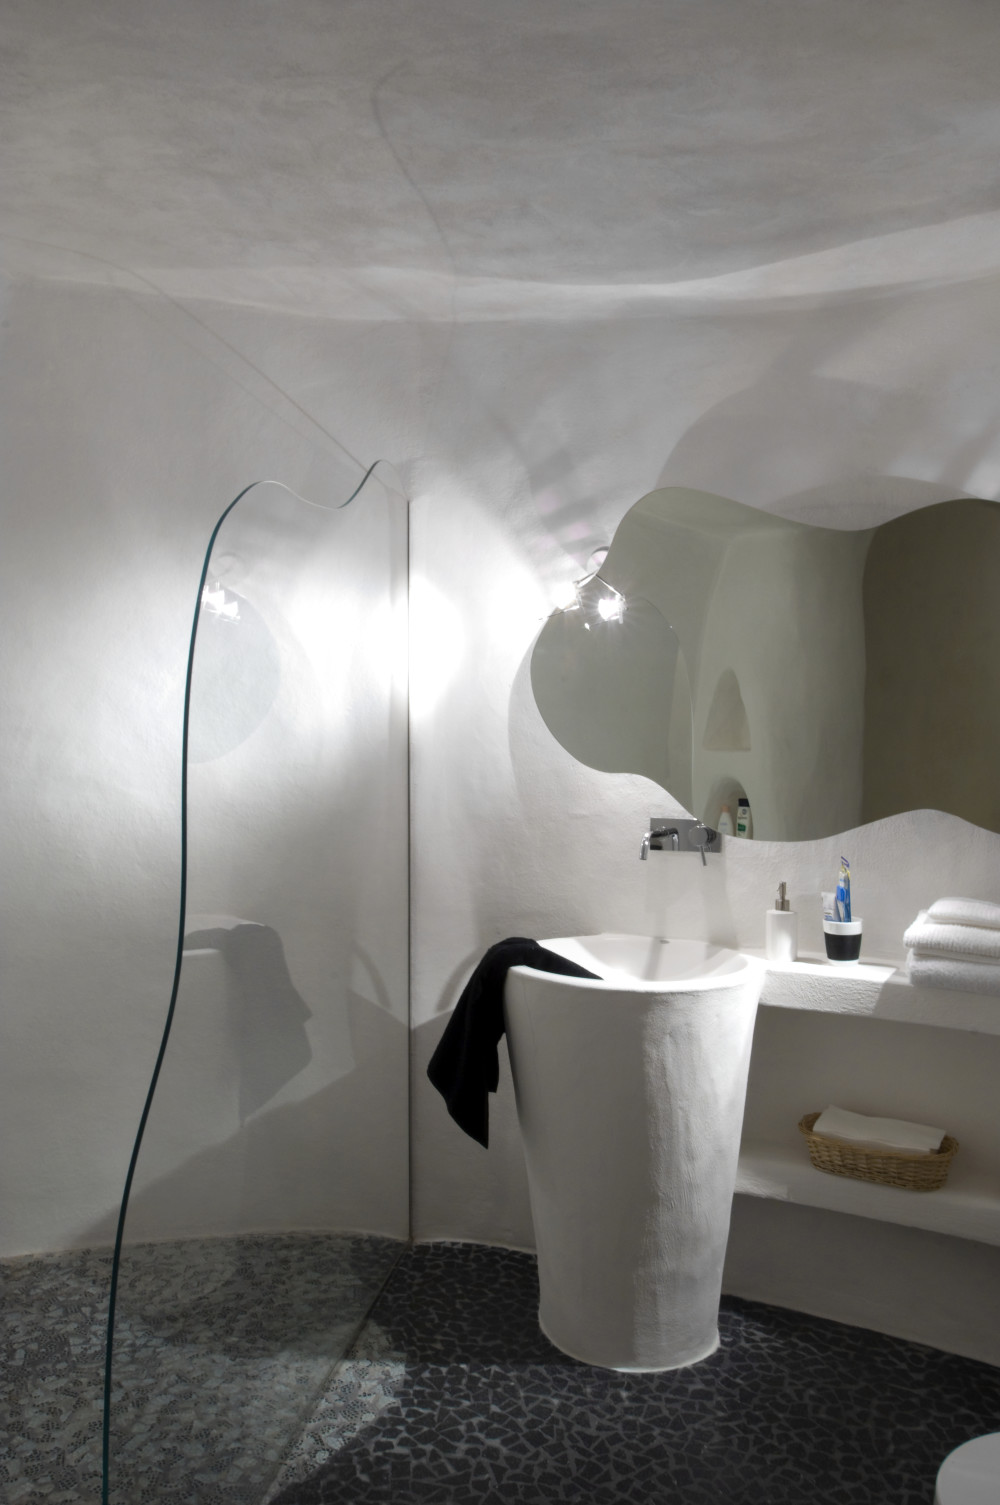 Bagno in grotta su design del proprietario.